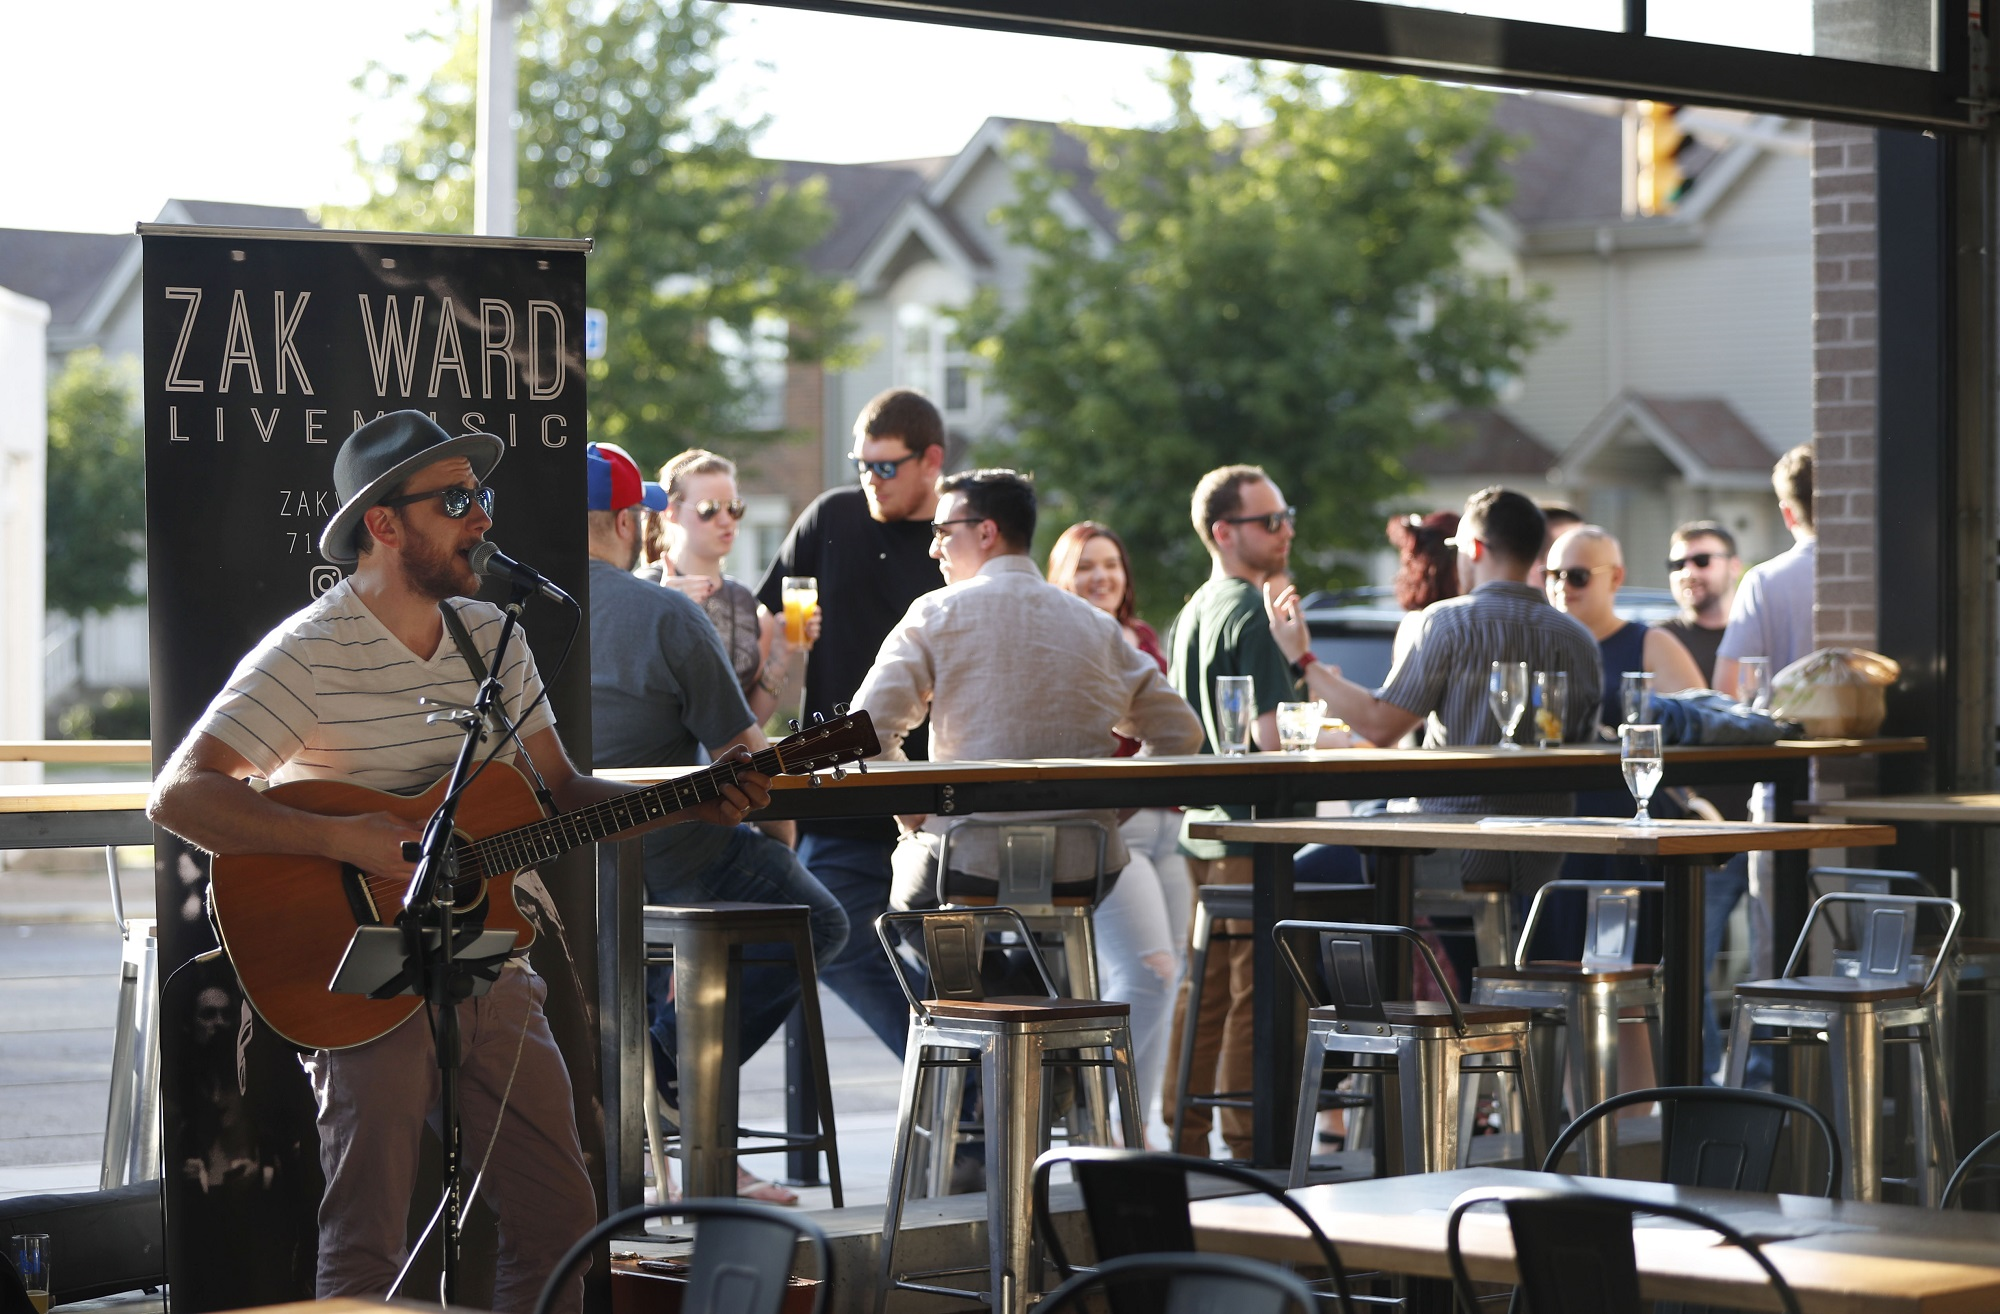 In 1.8 miles, beer-loving Buffalo's first brewery district ... San Go Breweries Map on love s united states map, media map, sugar map, attractions map, government map, pizza map, marine map, ice cream map,